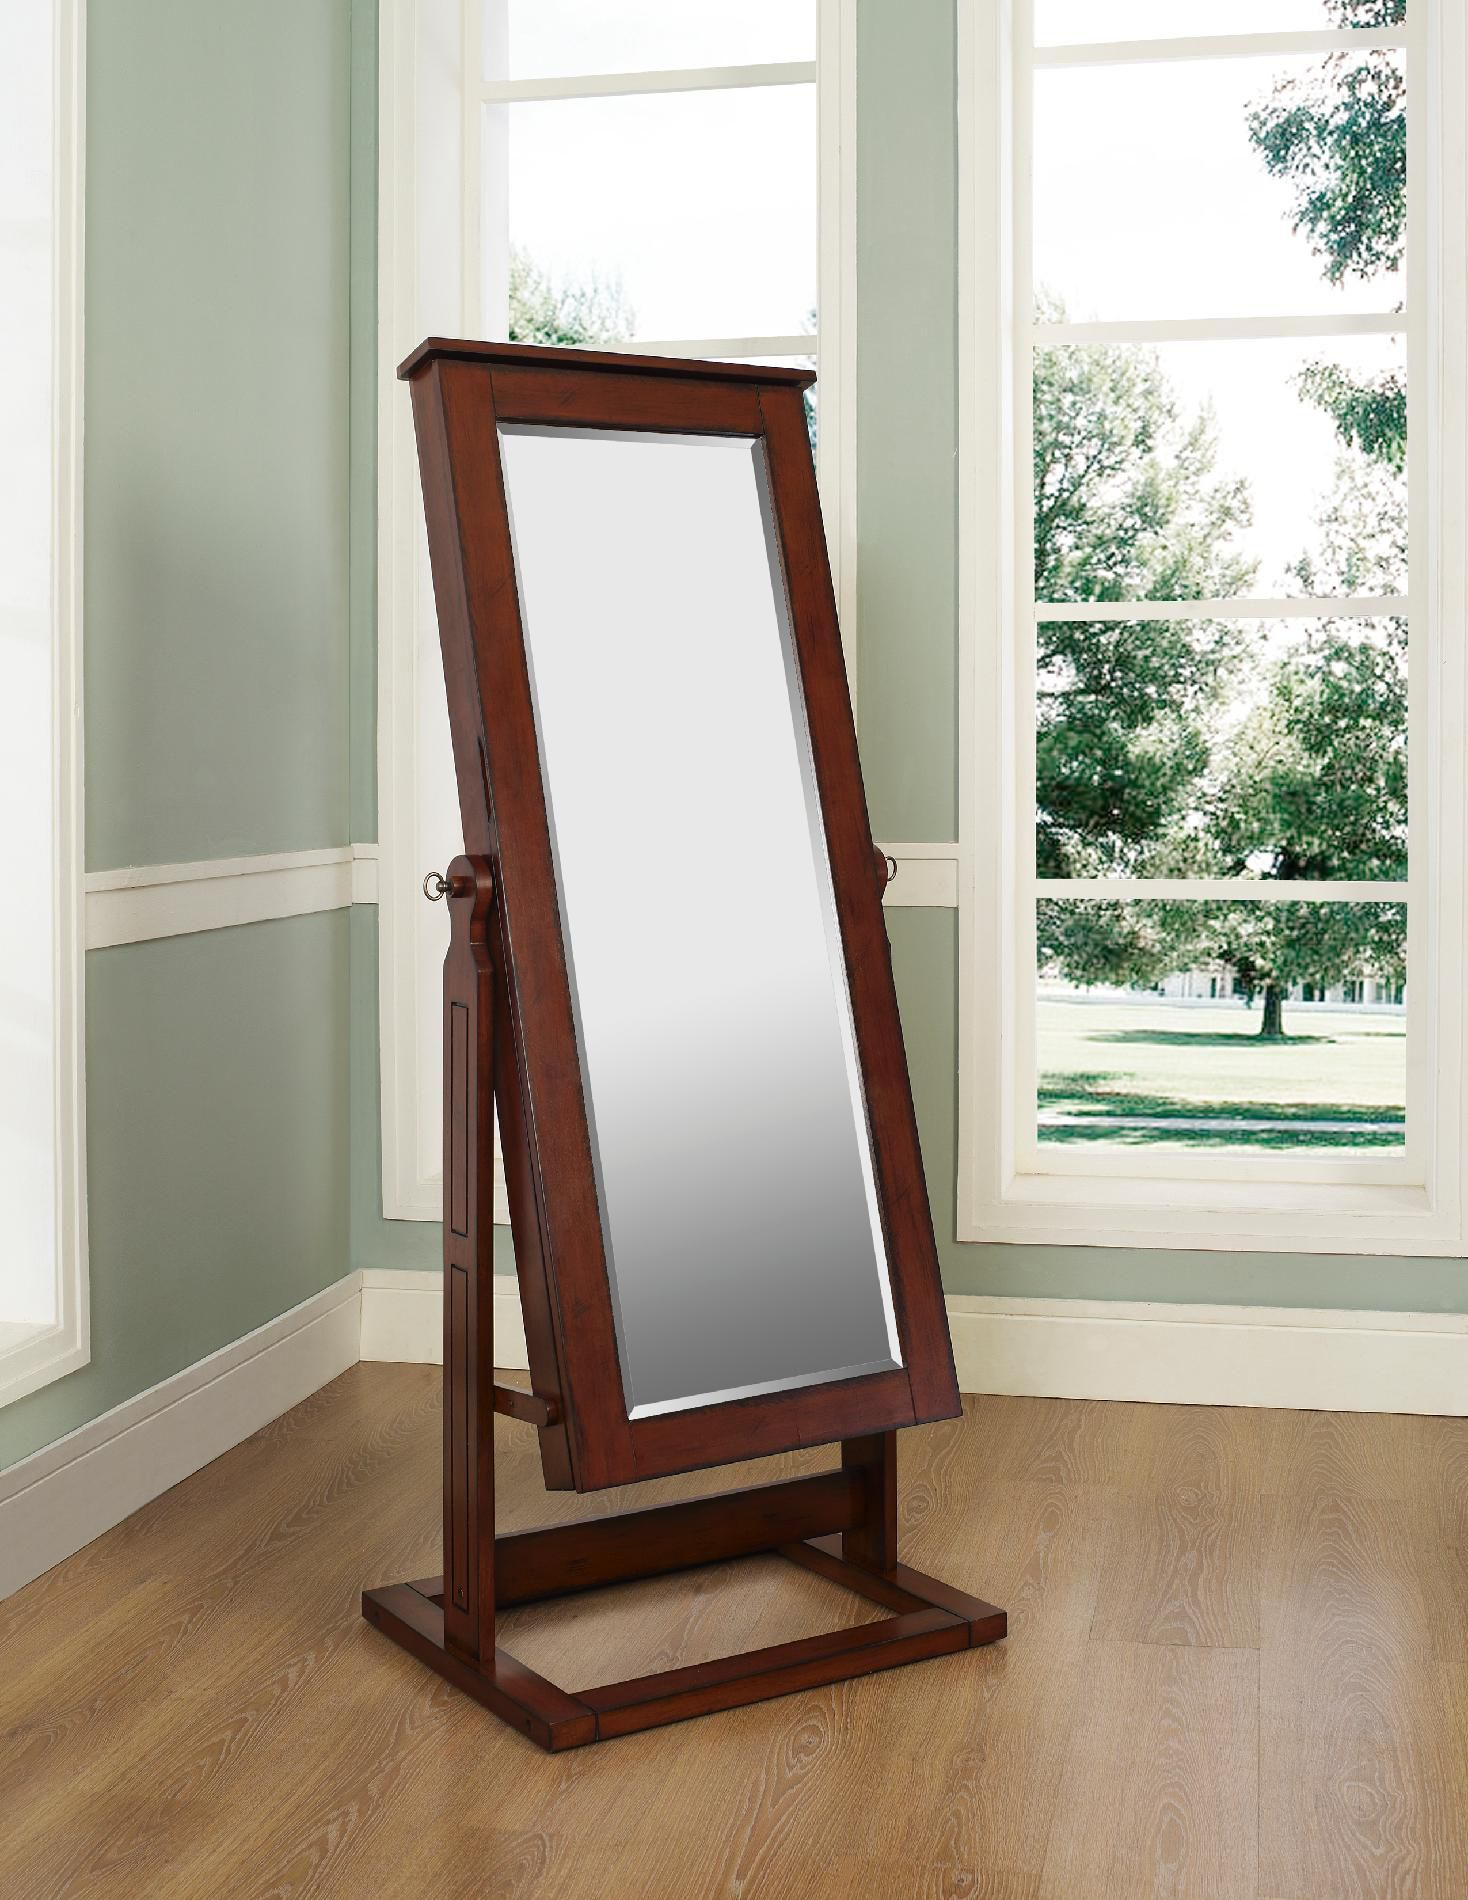 Cheval Espresso Jewelry Mirror